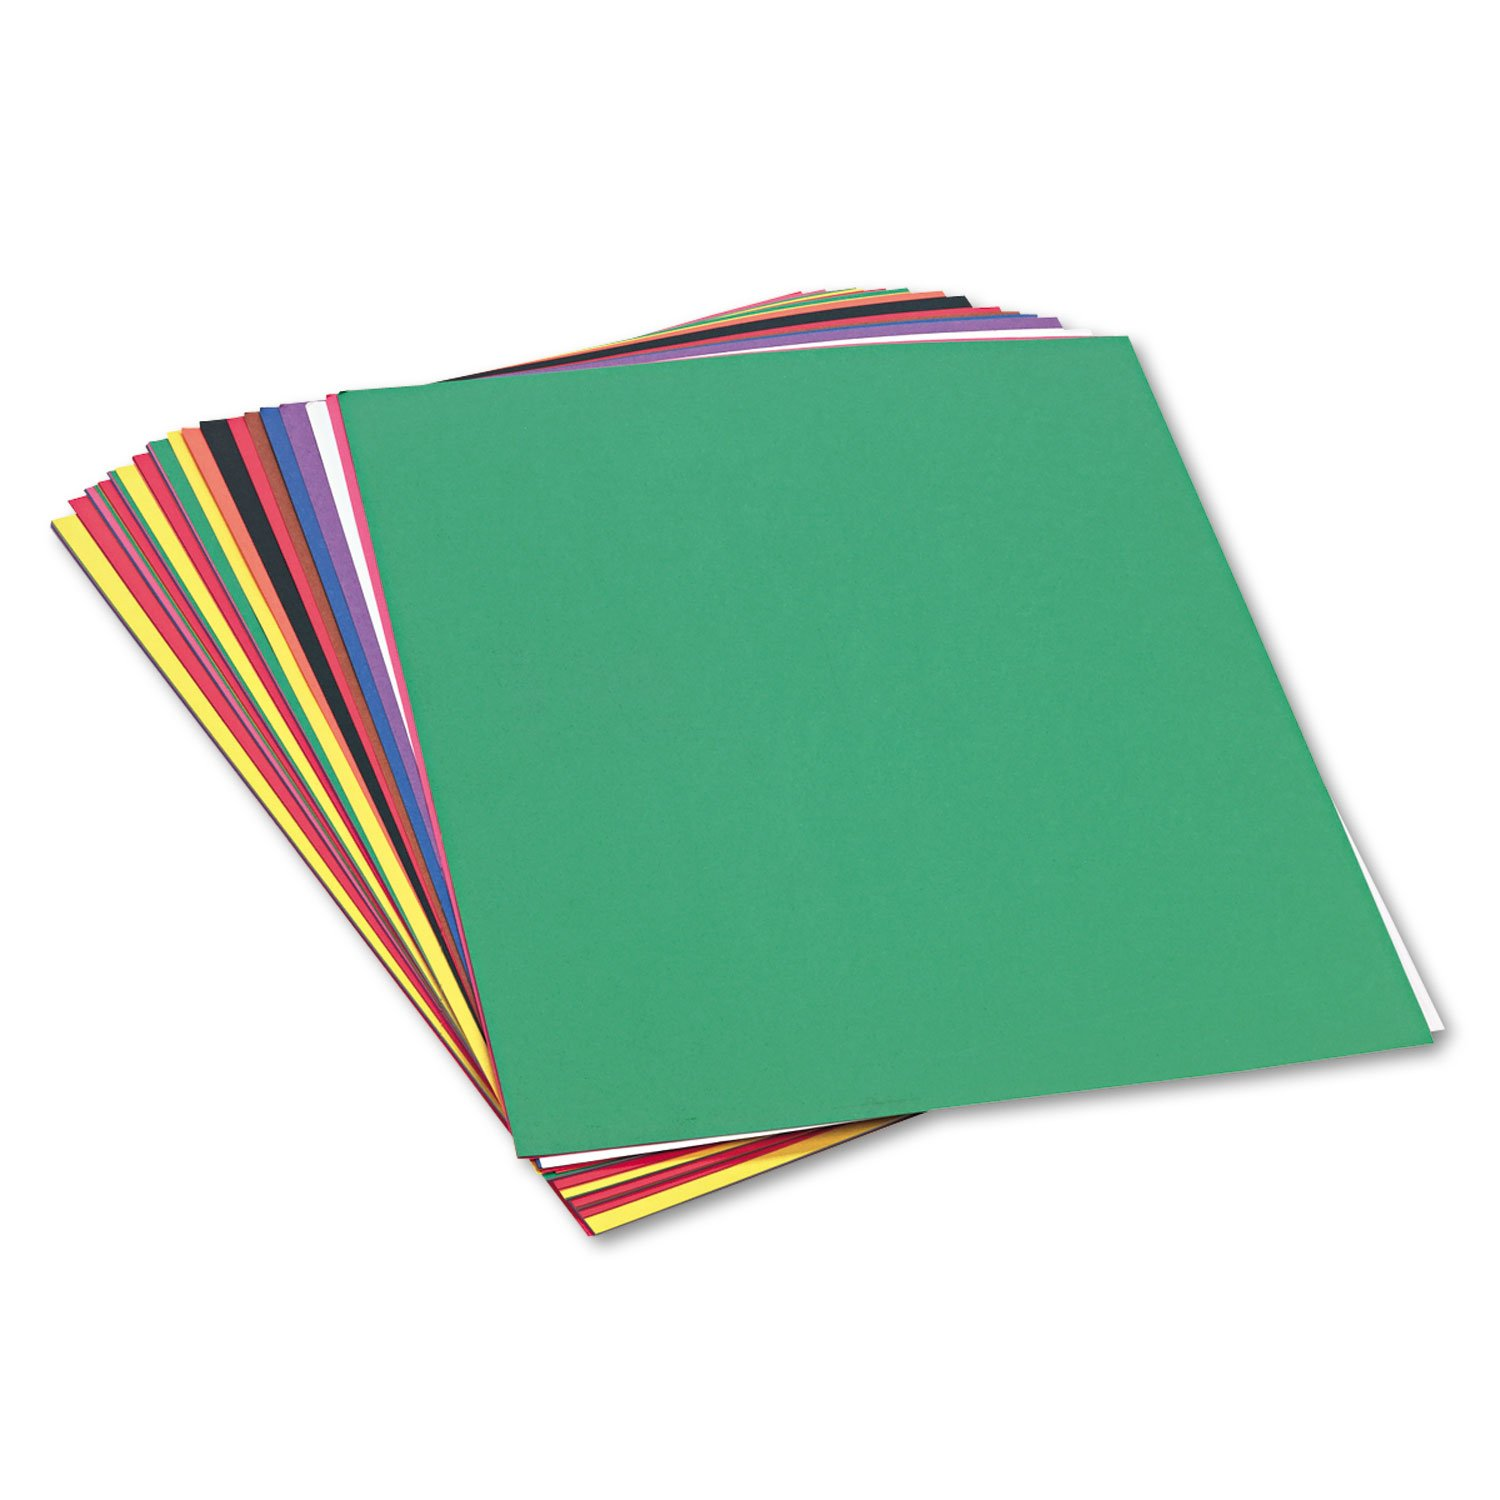 SunWorks 6523 Construction Paper, 58 lbs., 24 x 36, Assorted (Pack of 50 Sheets)